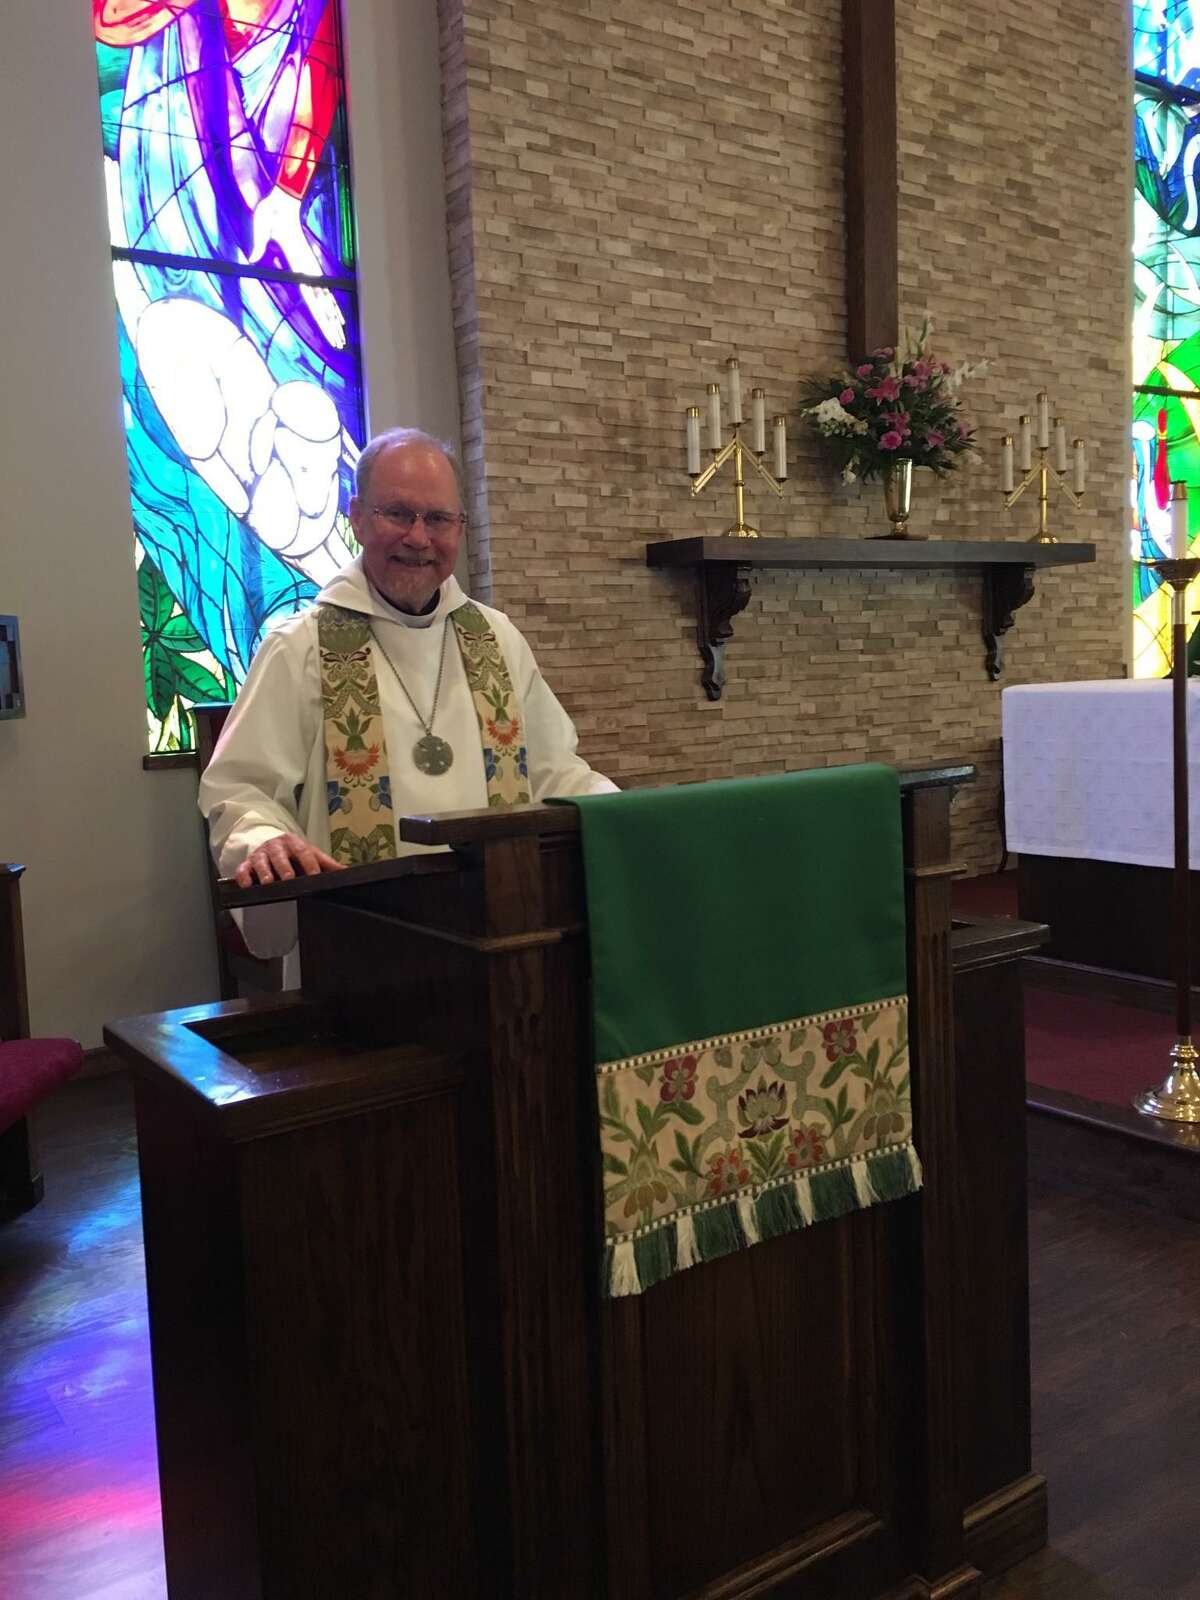 The Rev. Mark Wilkinson became rector at St. Paul's Episcopal Church in Katy this summer.